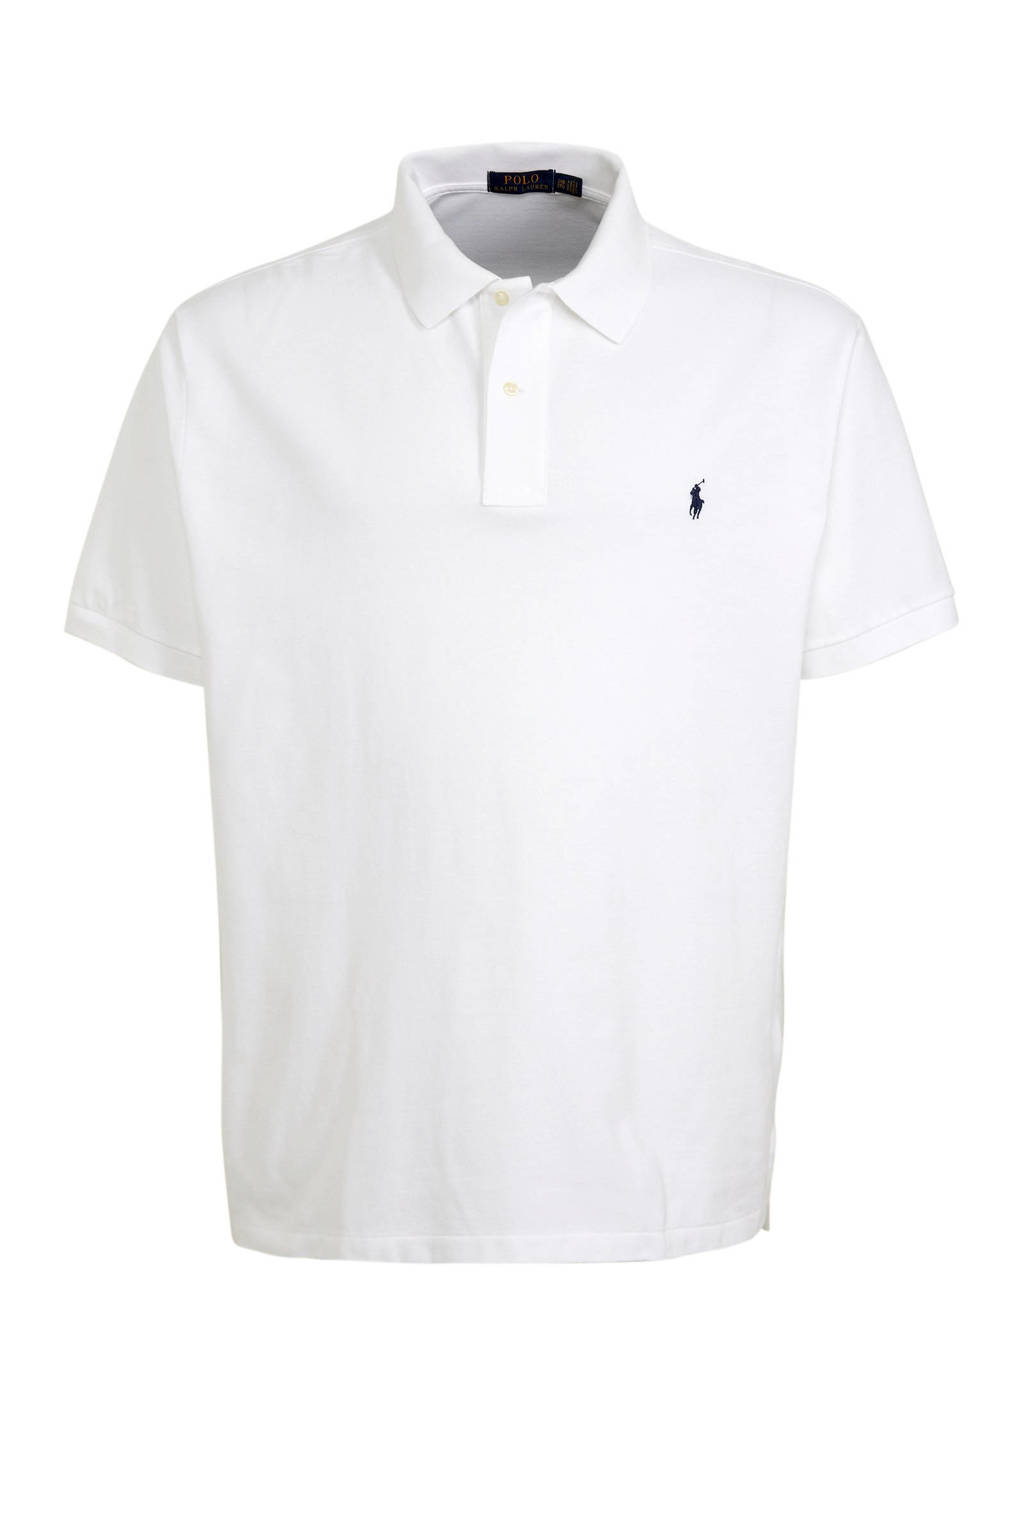 POLO Ralph Lauren Big & Tall +size regular fit polo wit, Wit